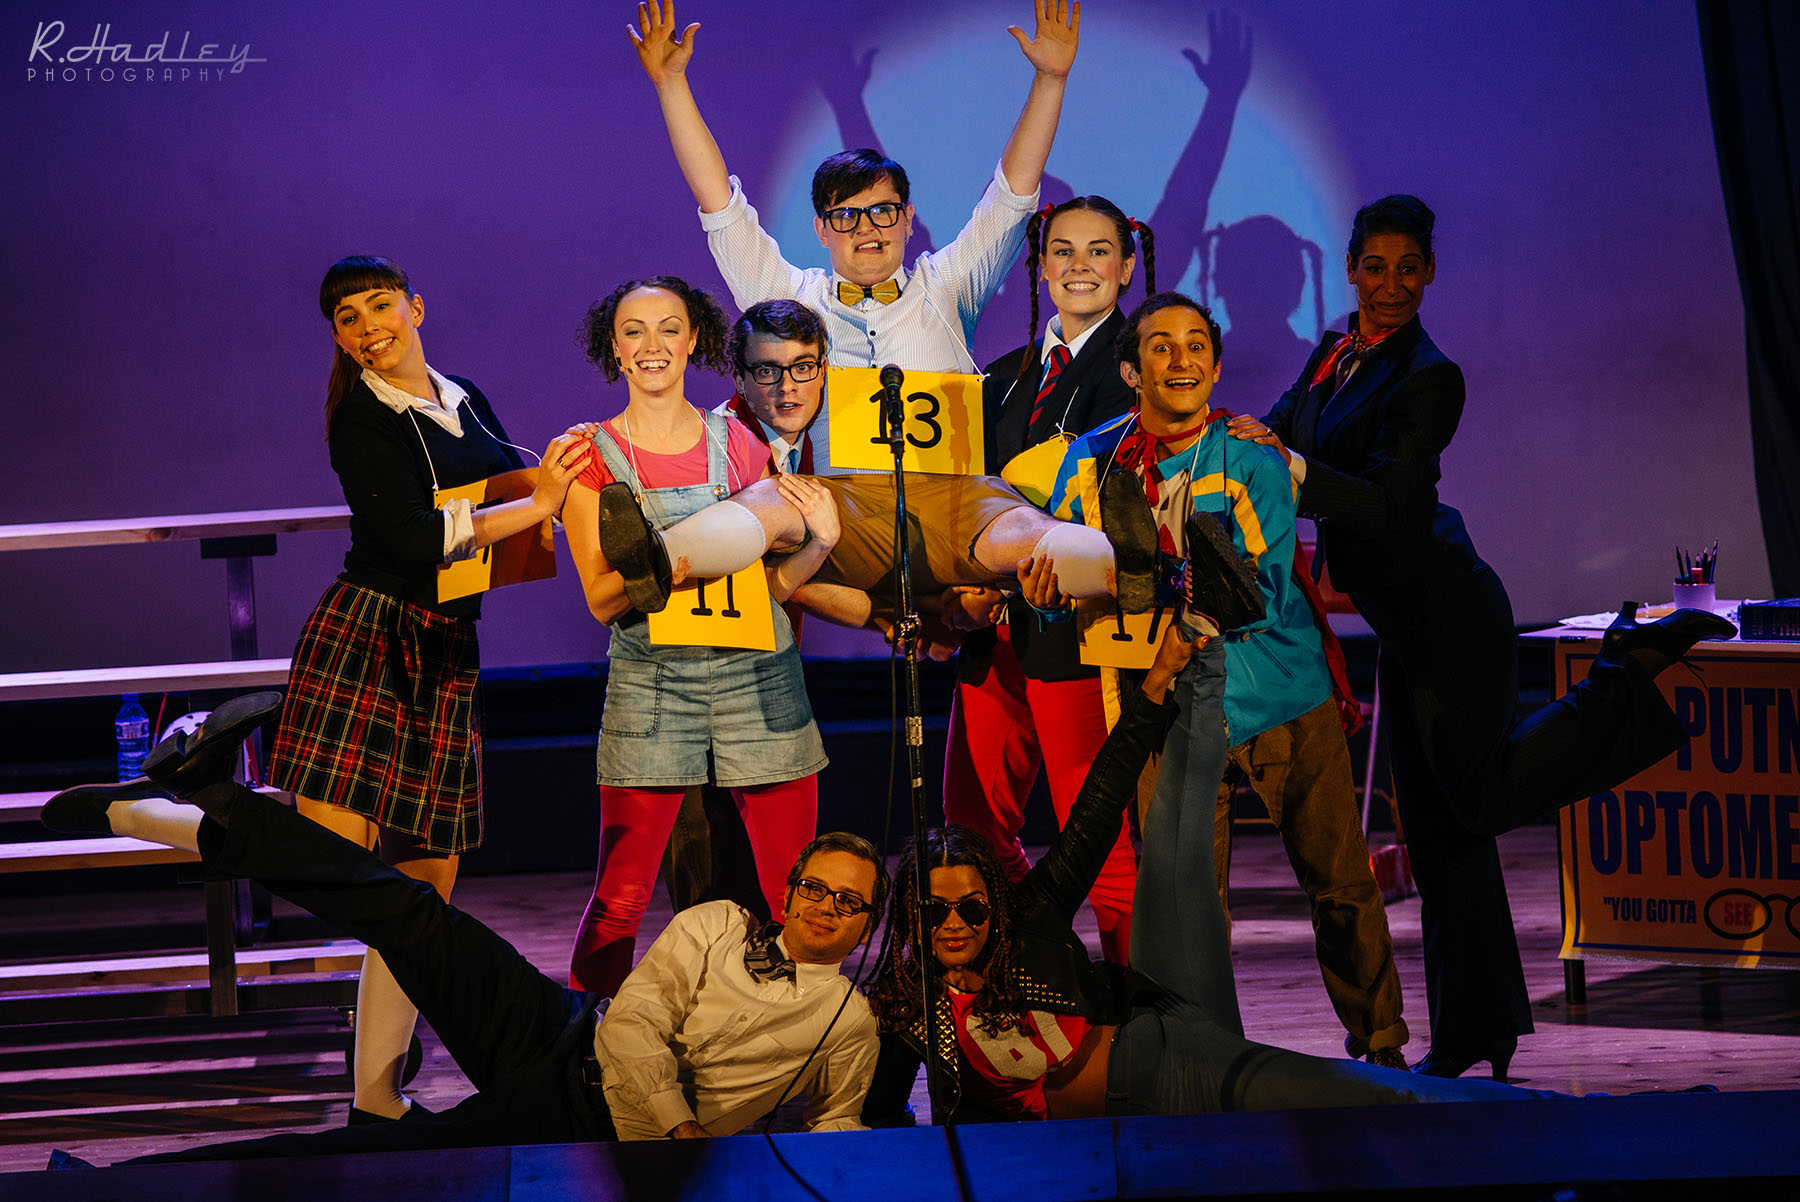 Photography of Jocular Theatre Company in Barcelona. Showcasing 'The 25th Annual Putnam County Spelling Bee'